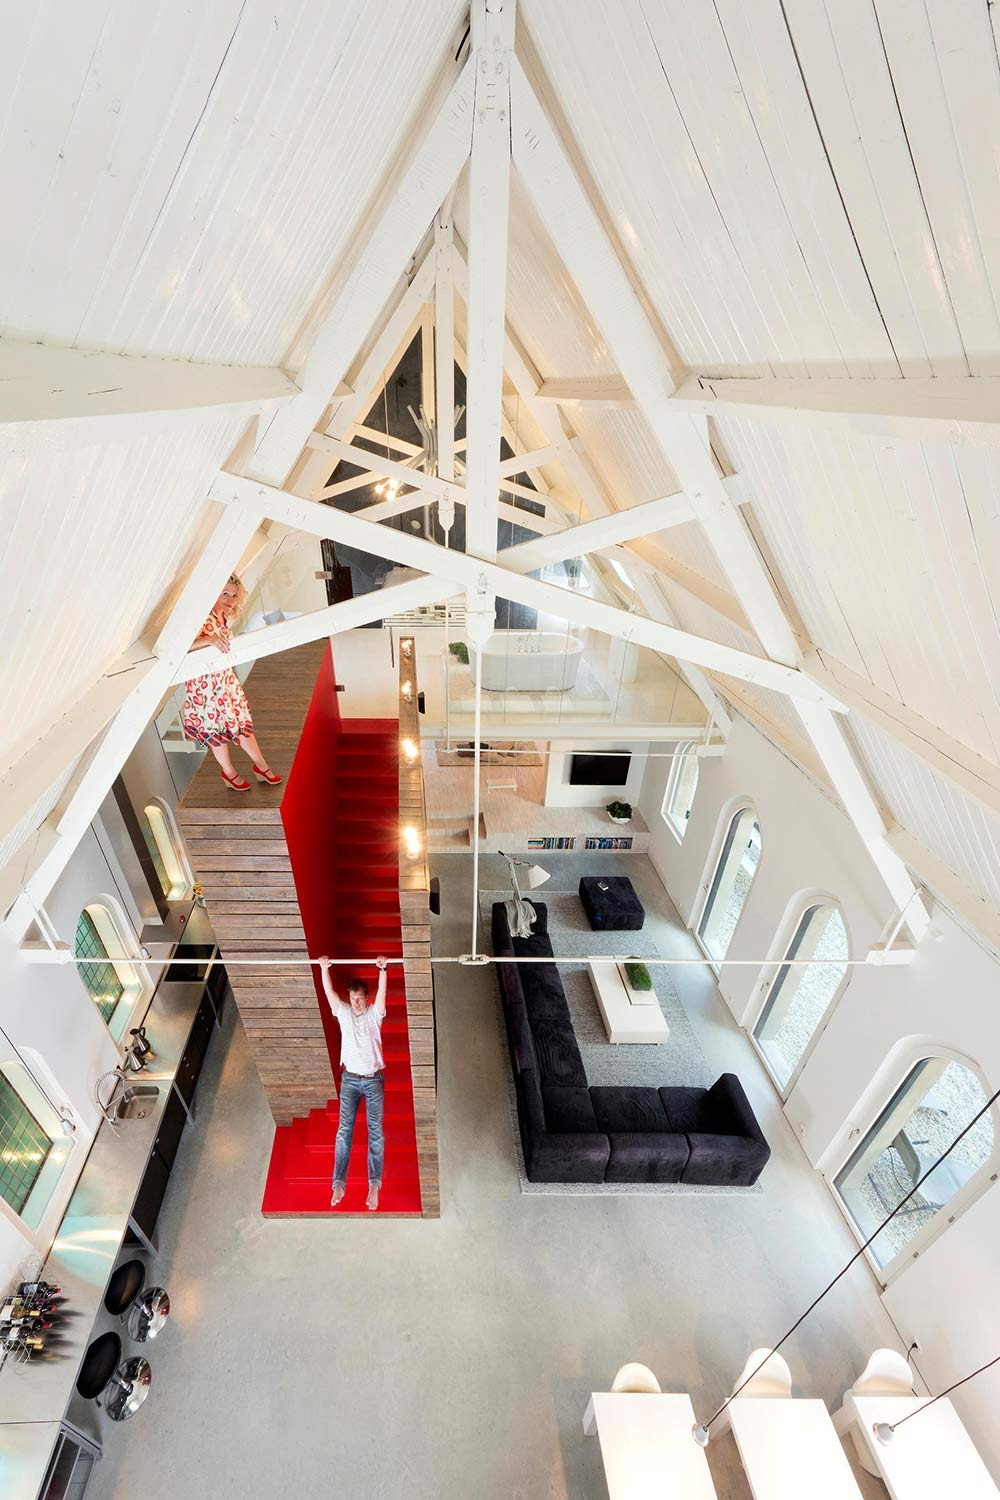 Living Space, Unique Loft Conversion in The Netherlands